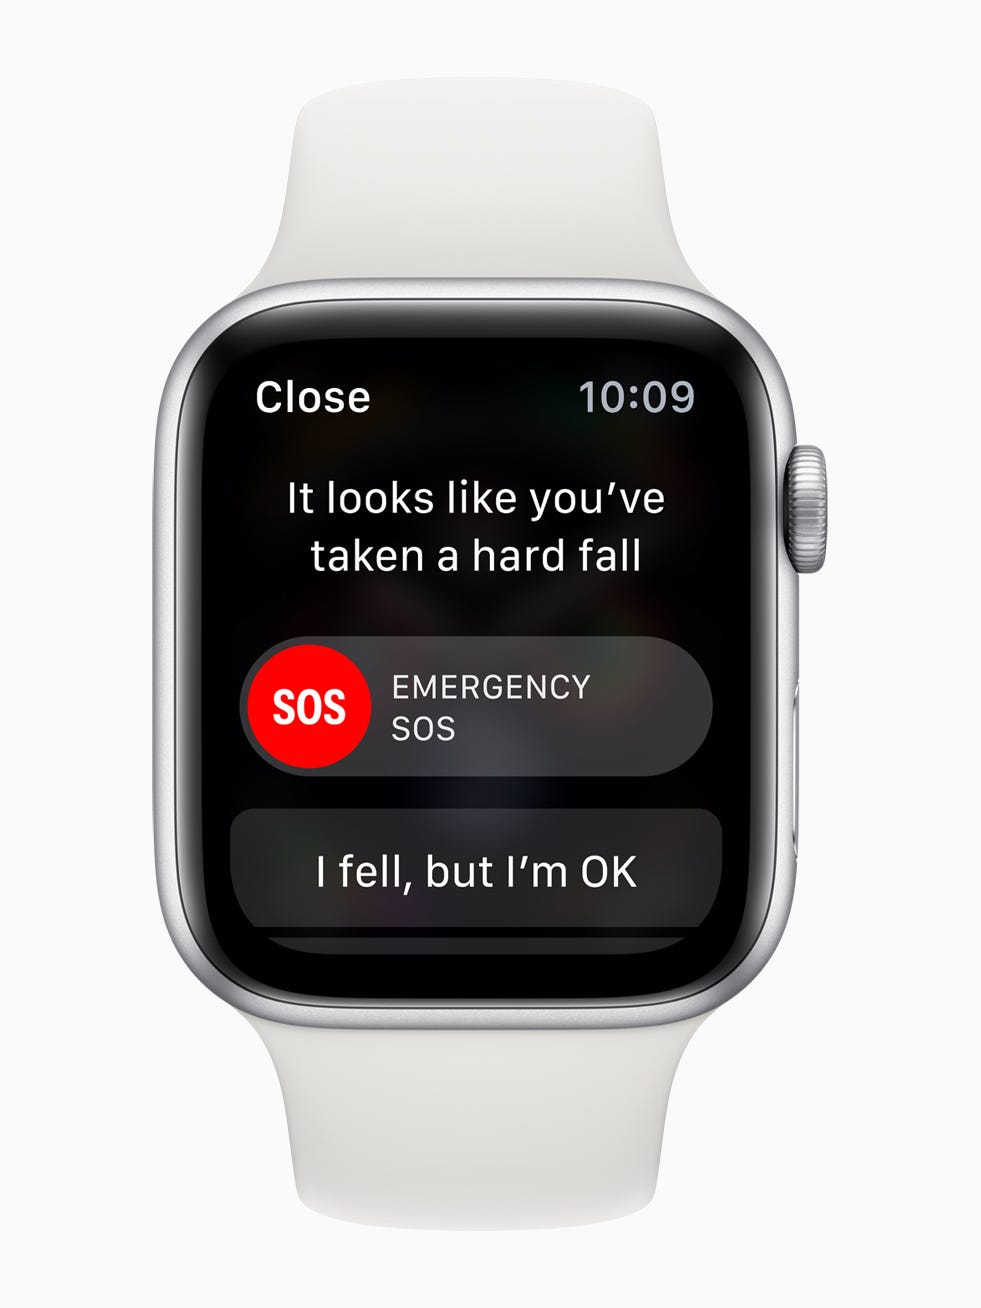 Apple Watch Adds Fall Detection And An Ecg Can They Save Your Life